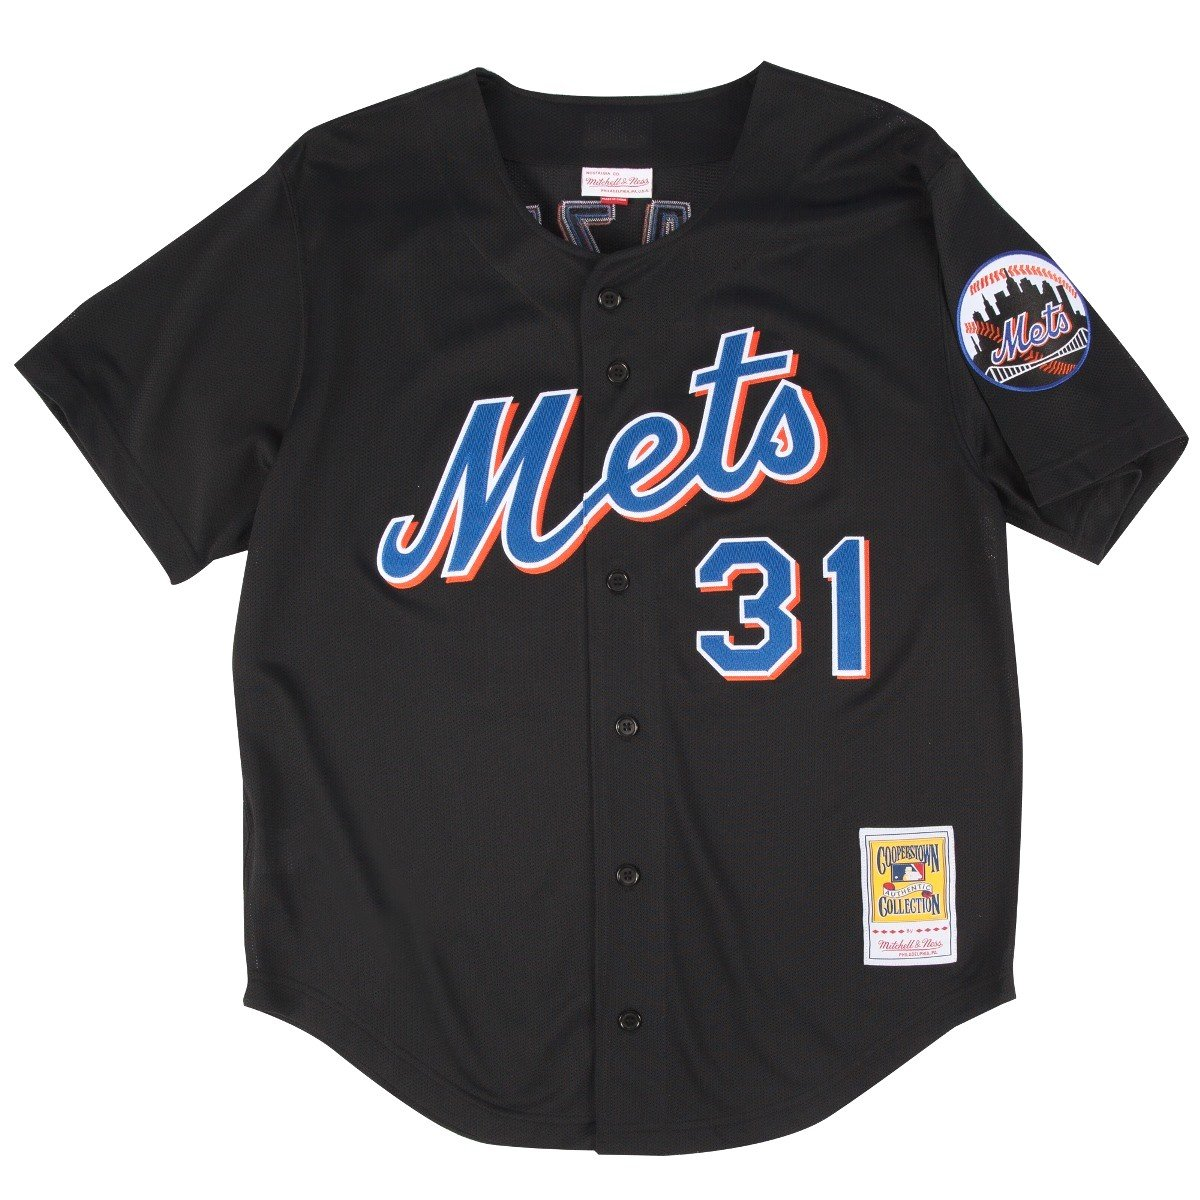 buy online b4ab4 2a391 Mitchell & Ness Mike Piazza Black New York Mets Authentic Throwback Jersey